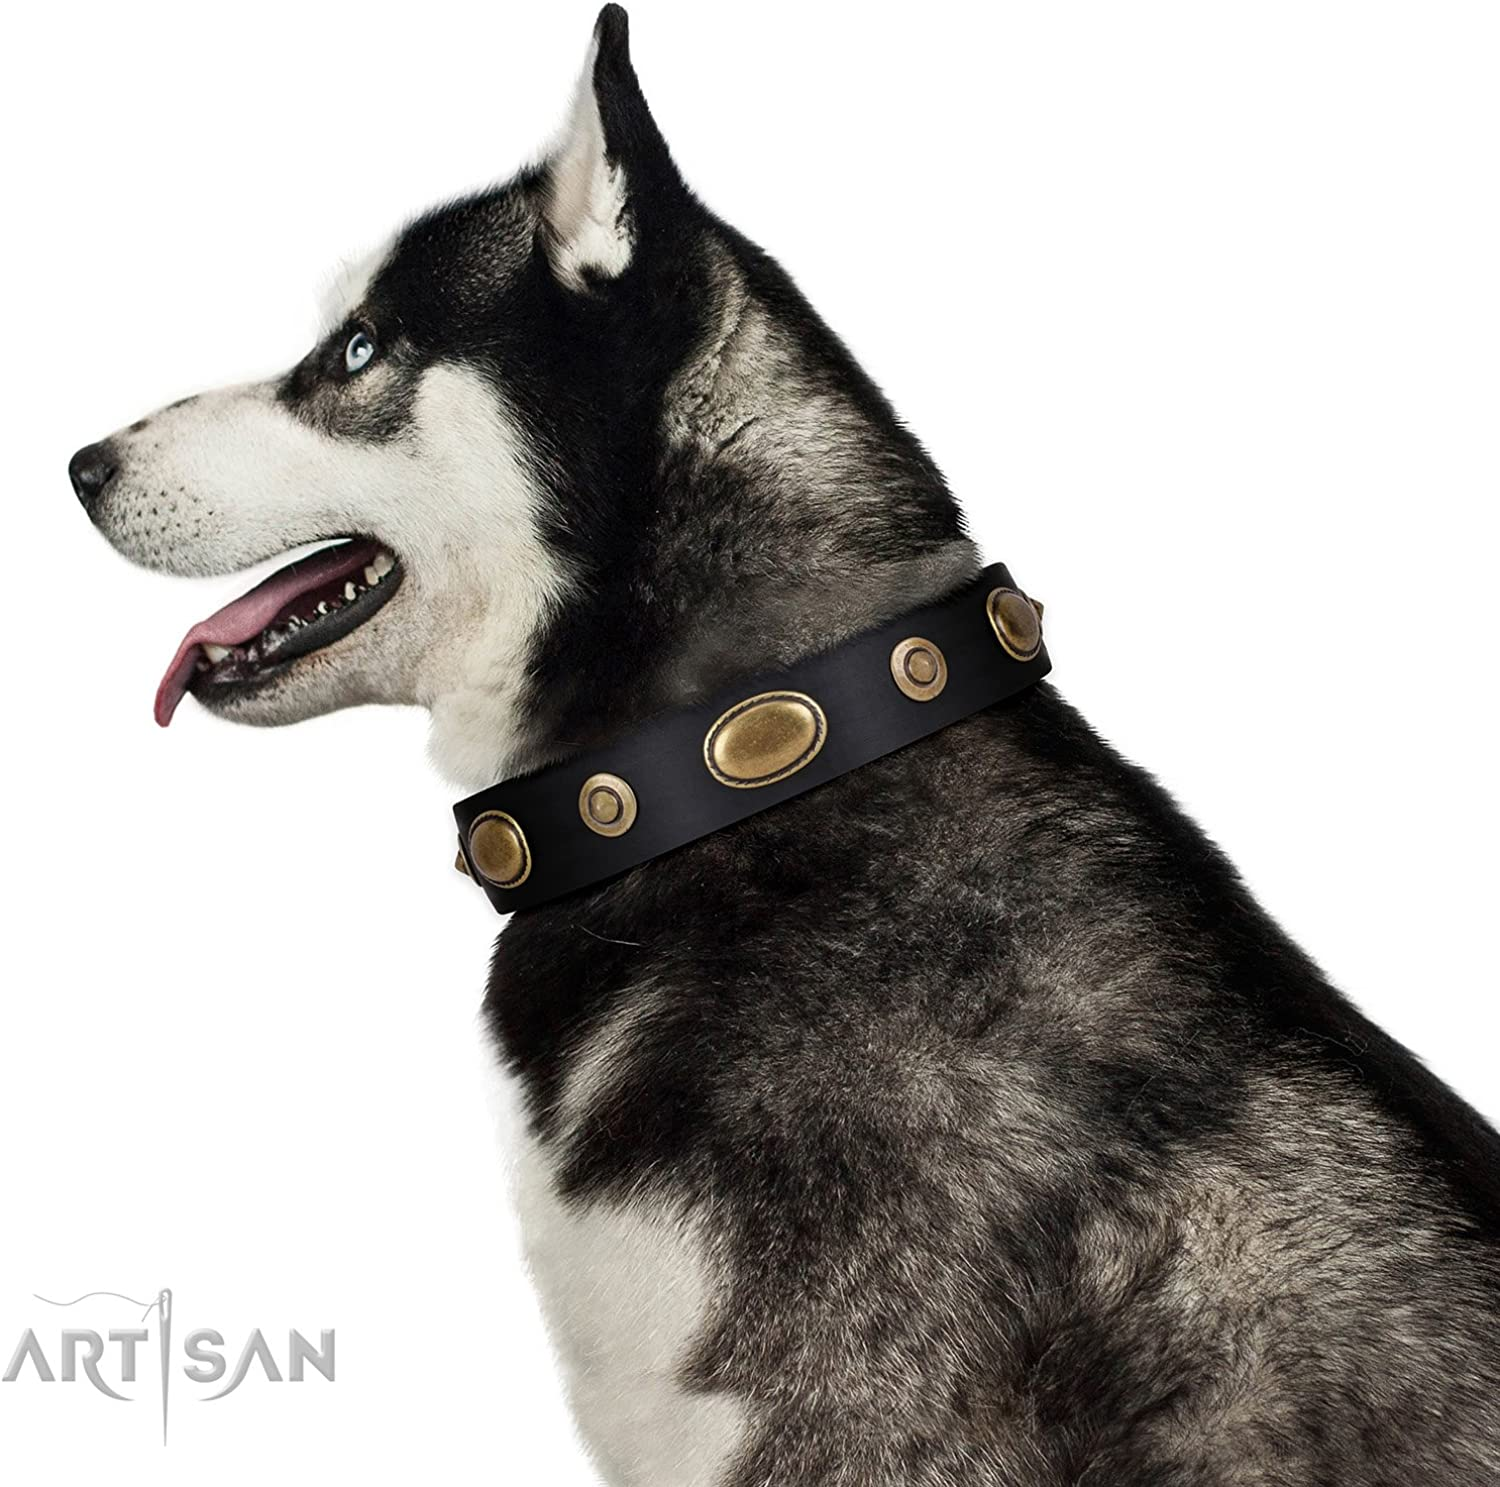 FDT Artisan 20 inch Black Leather Dog Collar  Retro Temptation  Exclusive Handcrafted Item  1 1 2 inch (40 mm) Wide  Gift Box Included